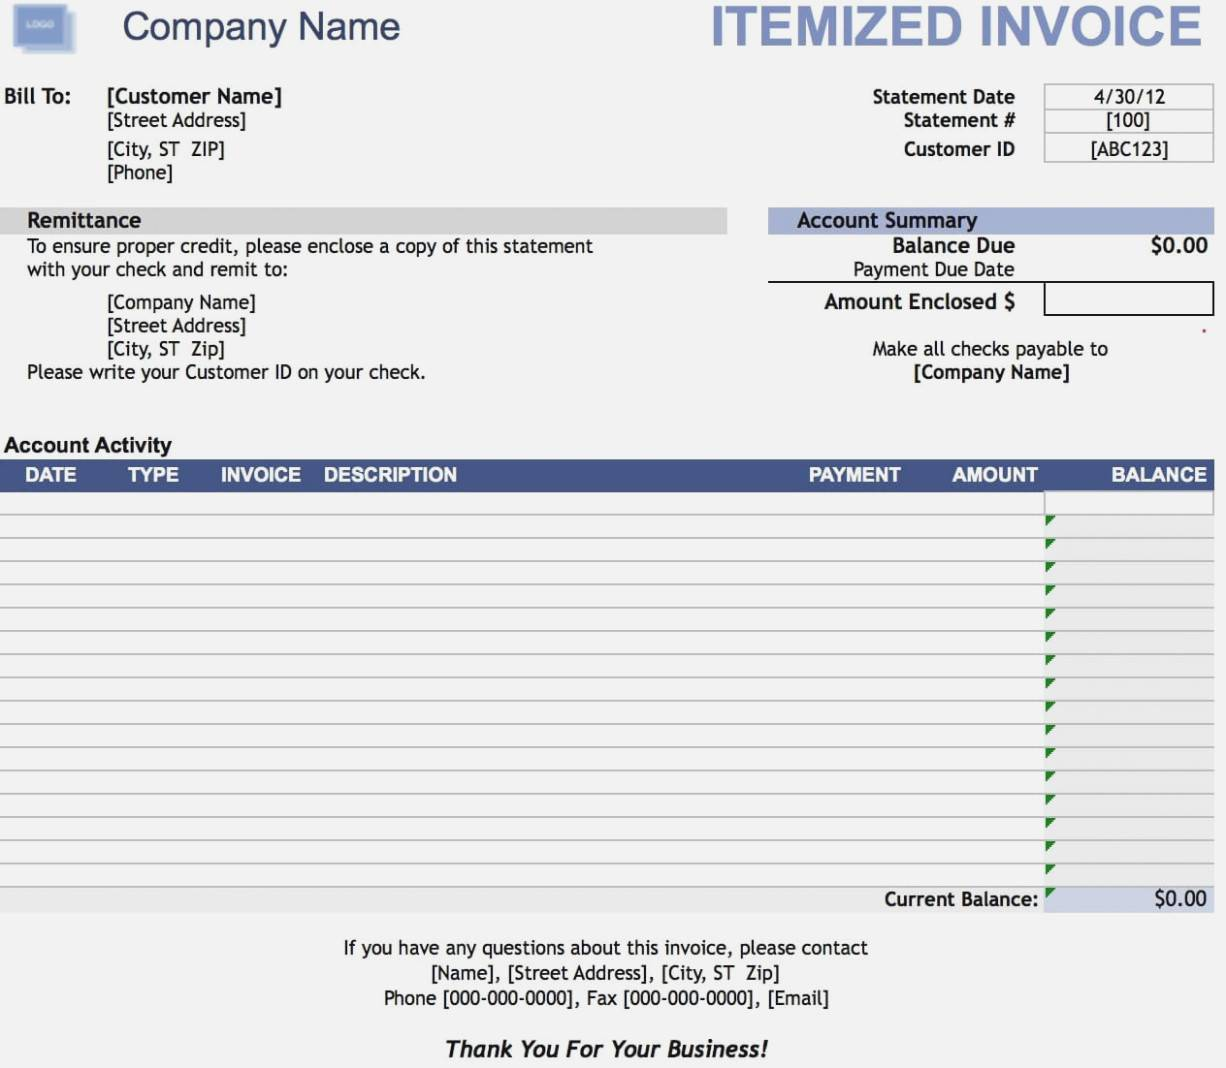 Itemized Bill Template